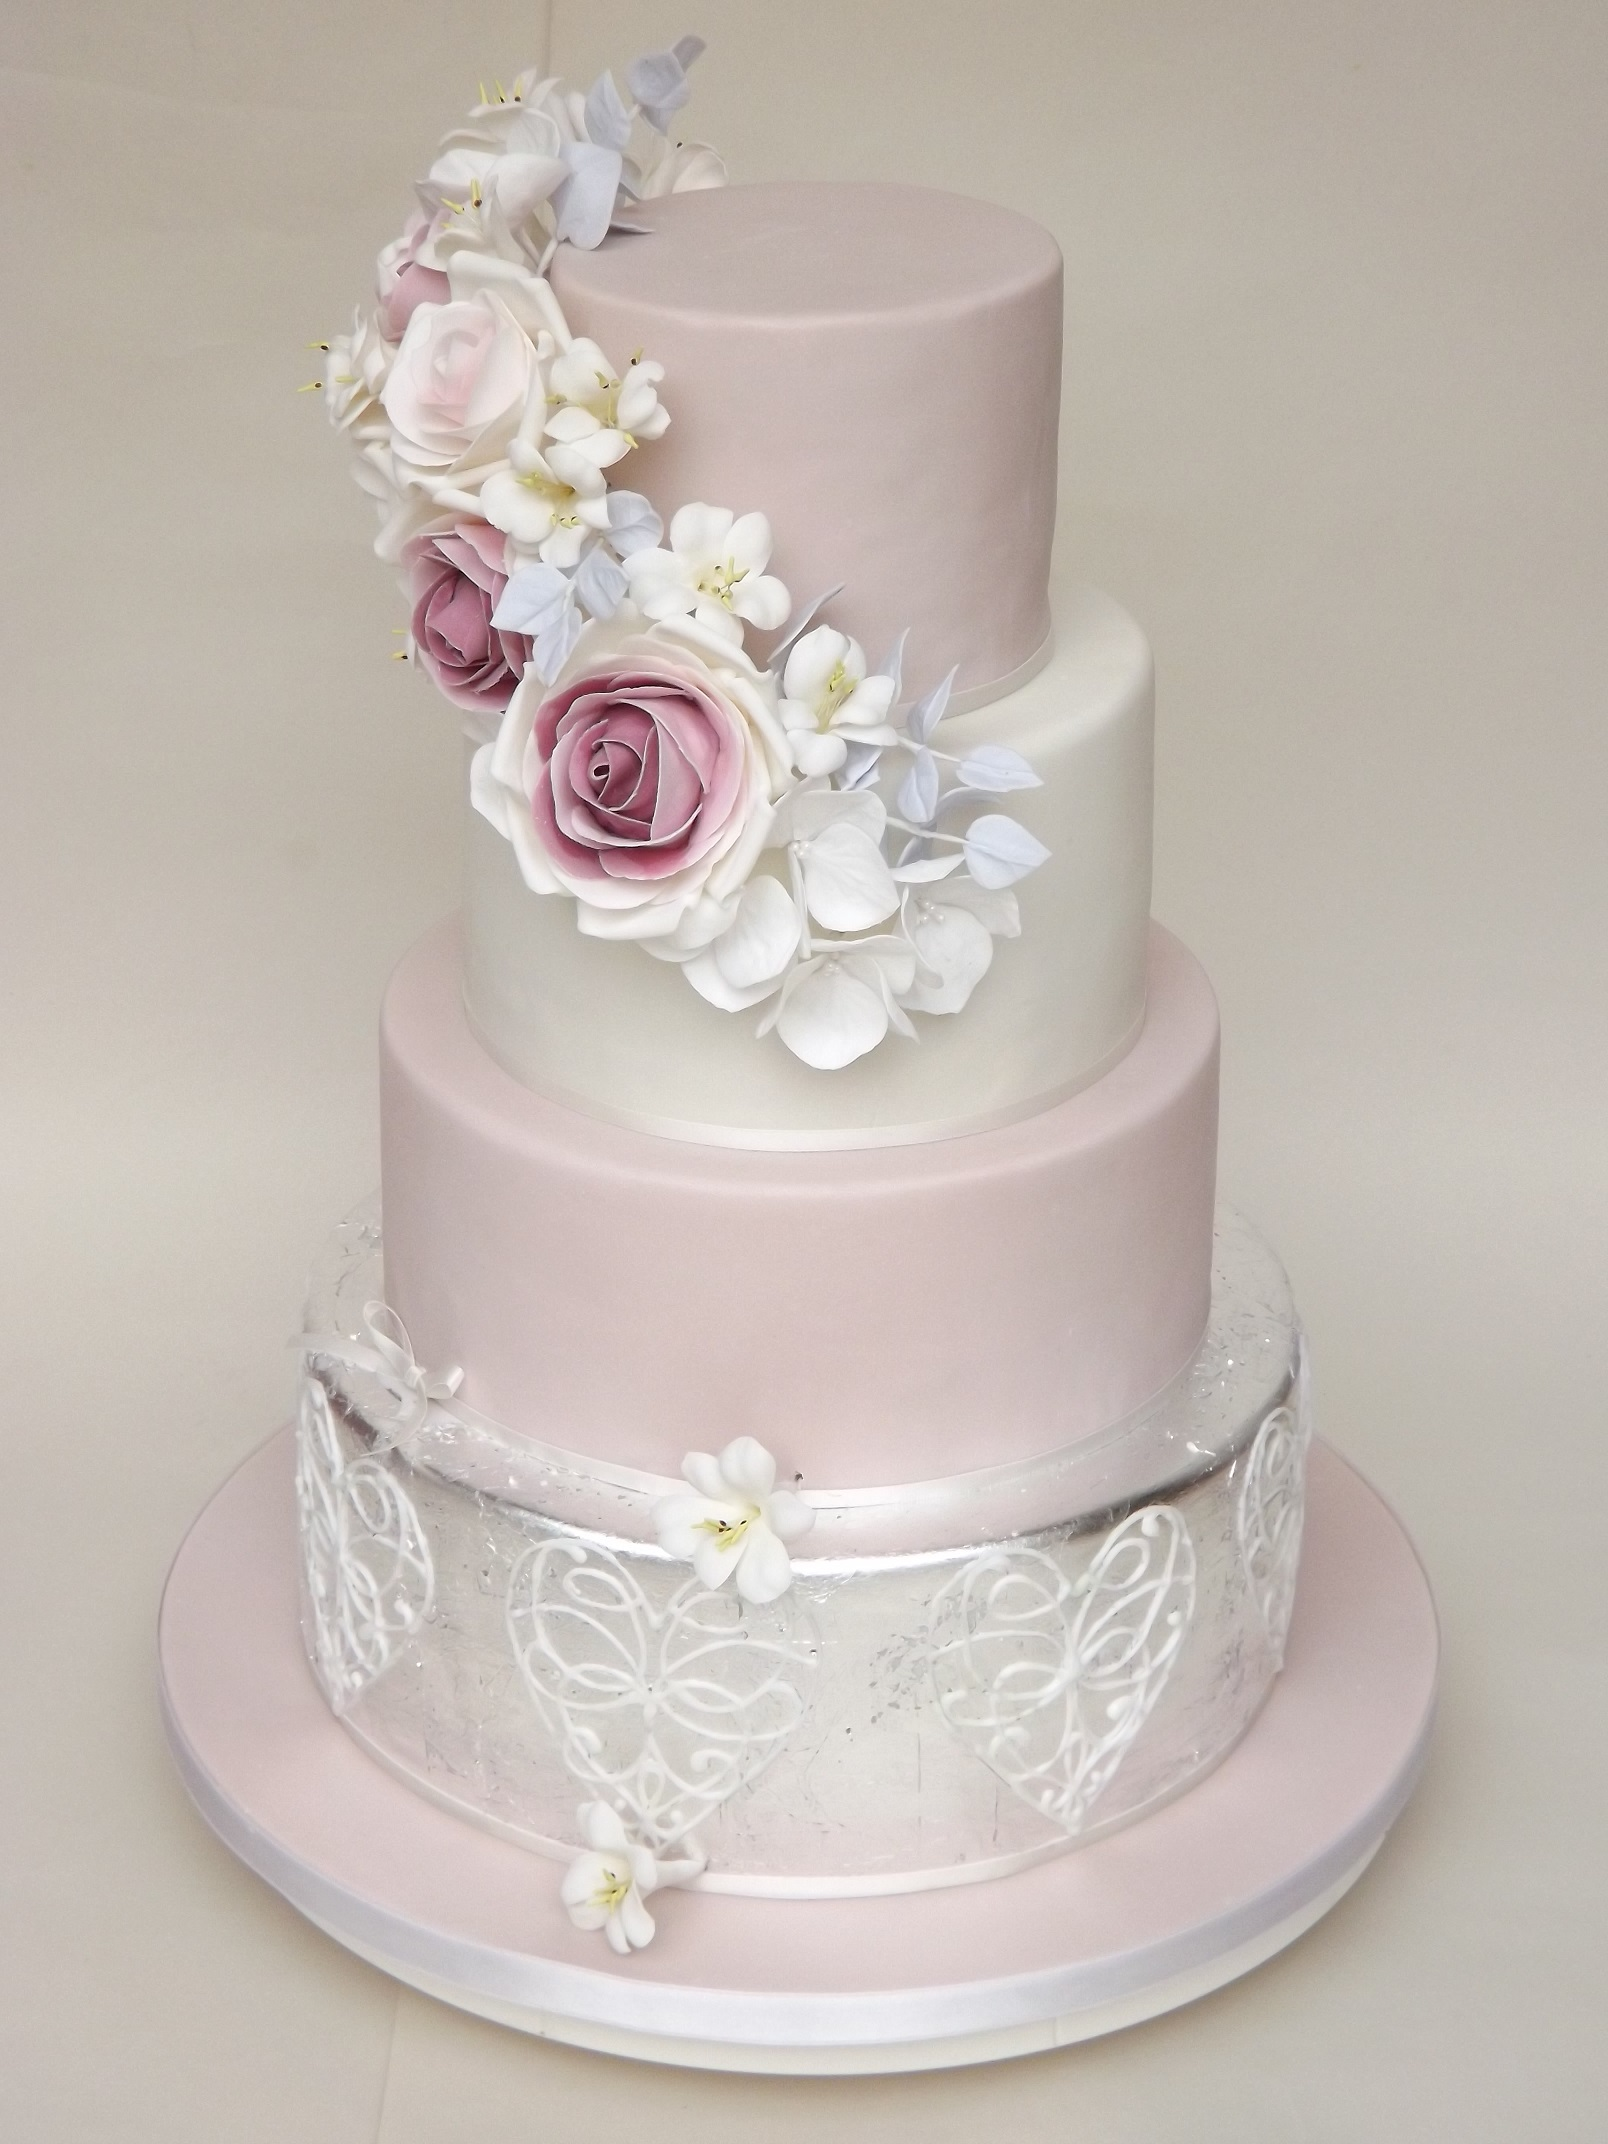 Wedding Cakes Images Pictures Idea Wallpapers